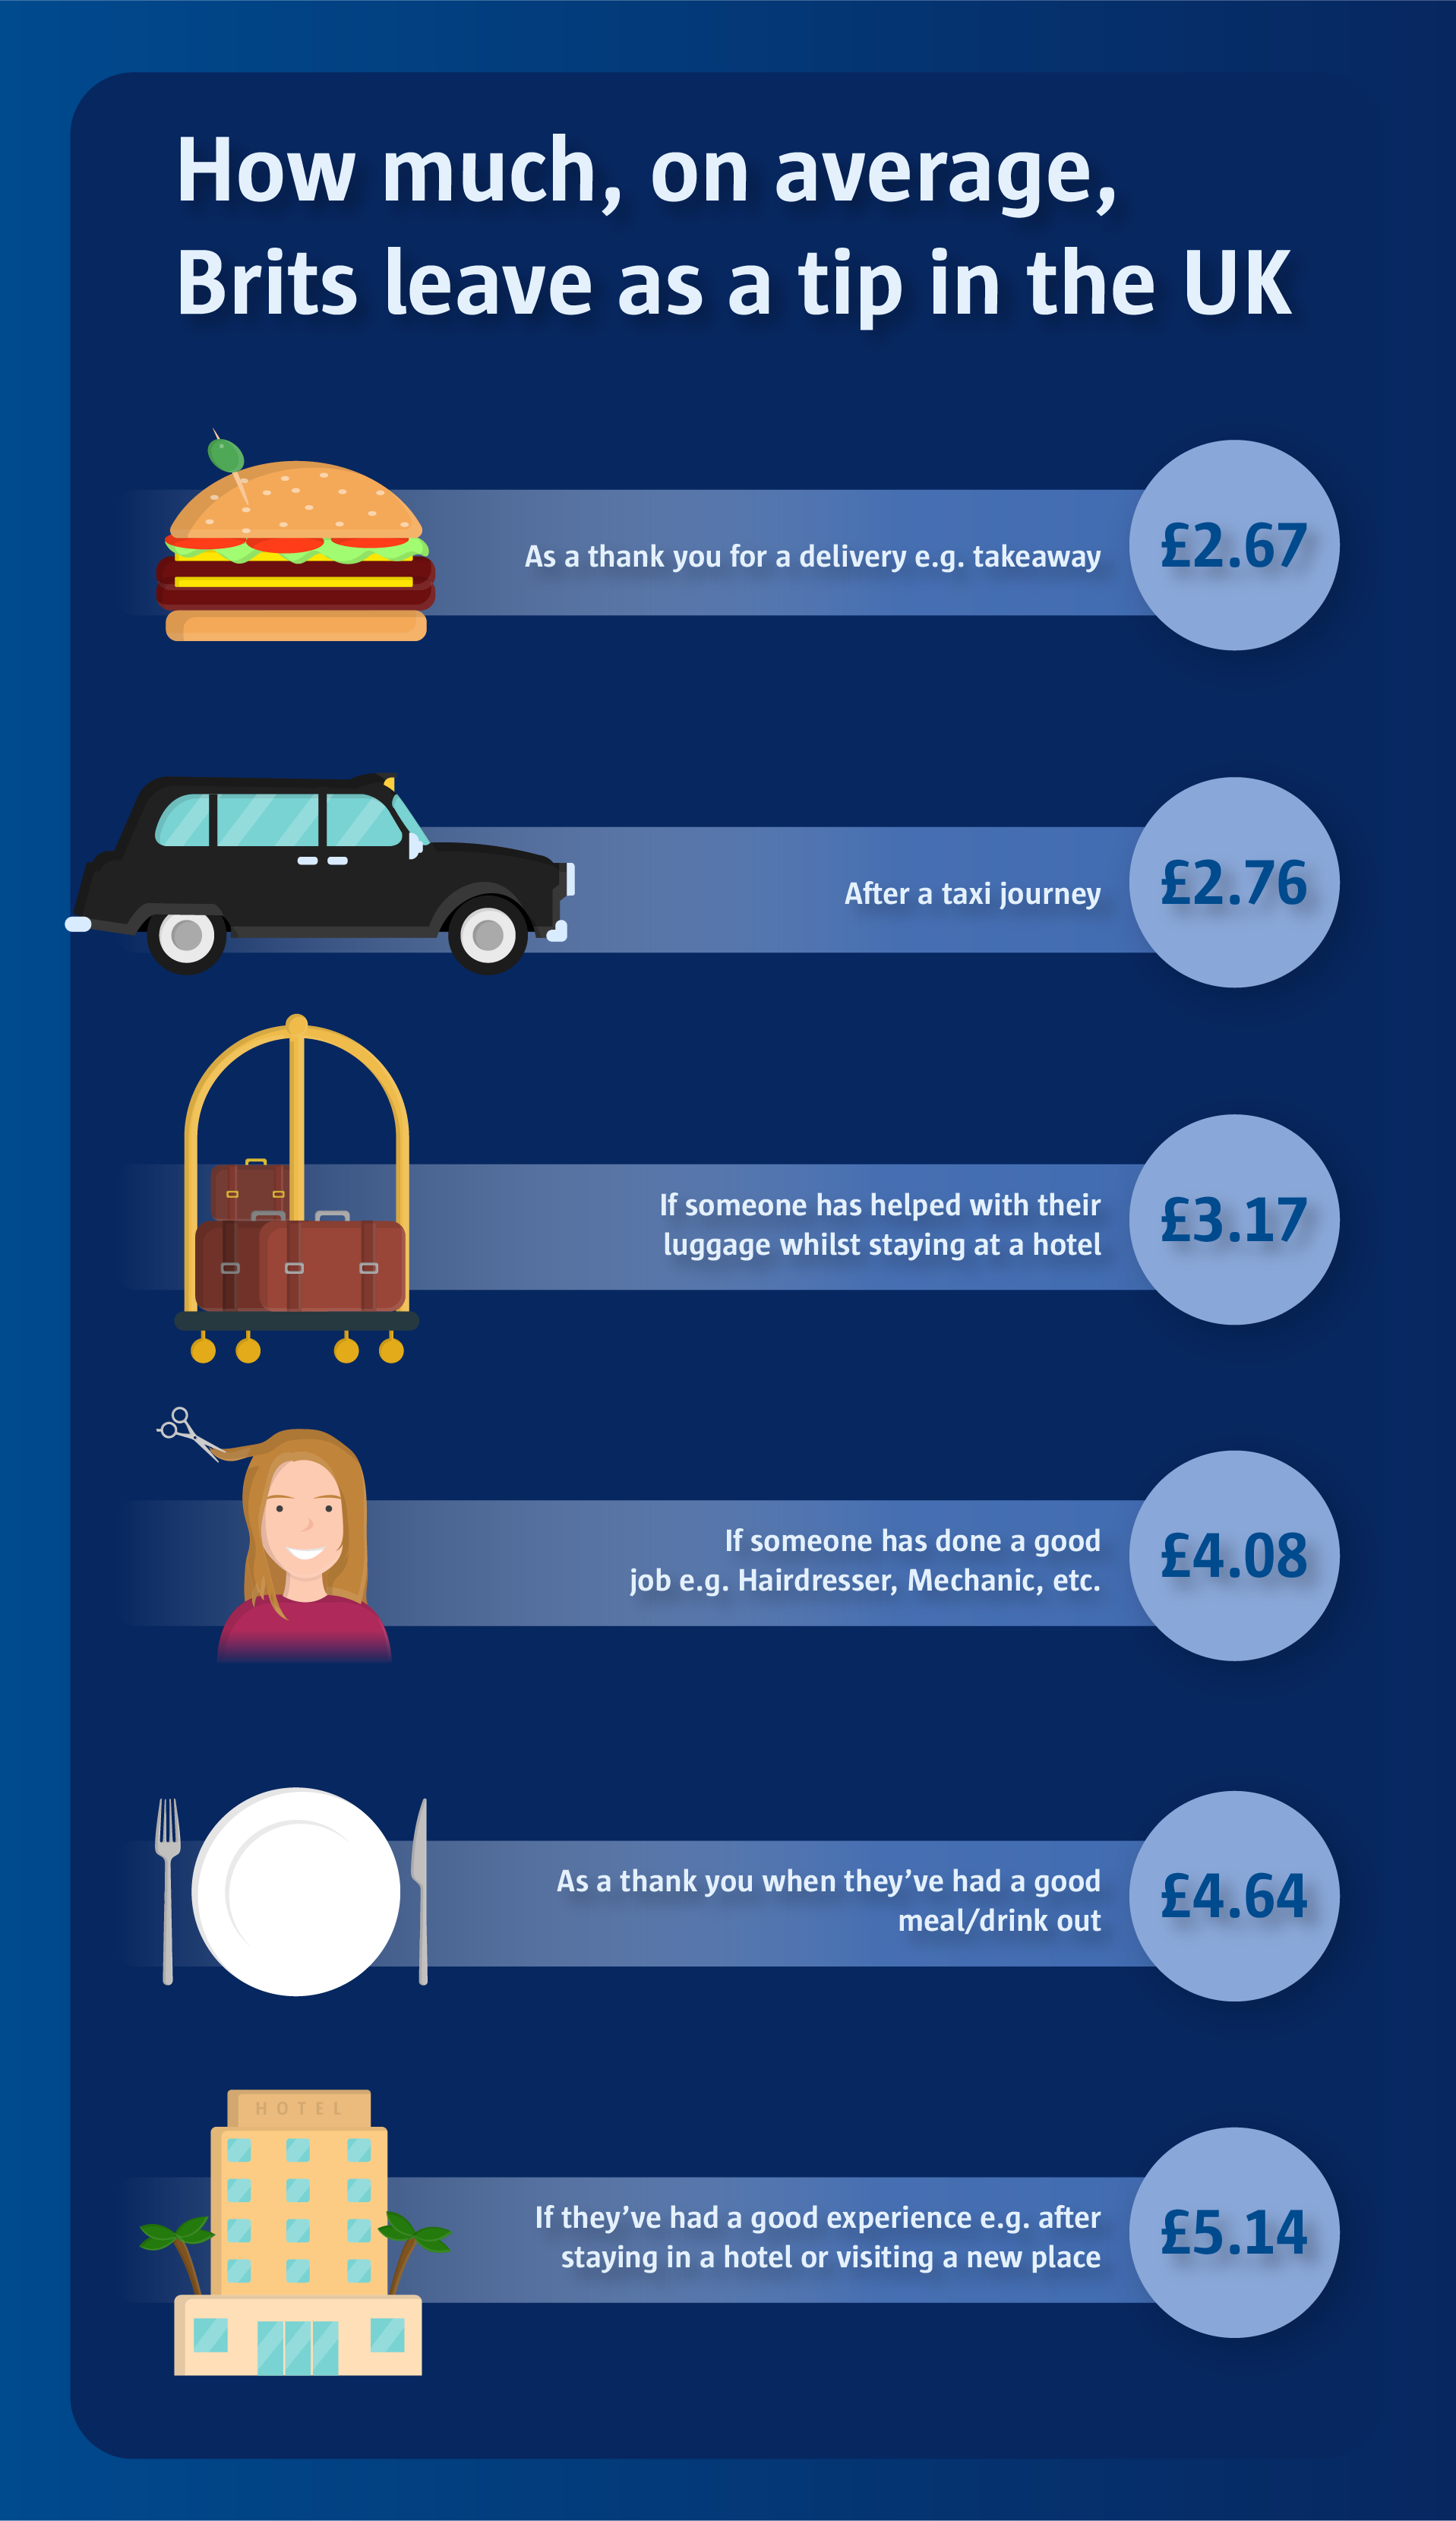 How much, on average Brits leave as a tip in the UK